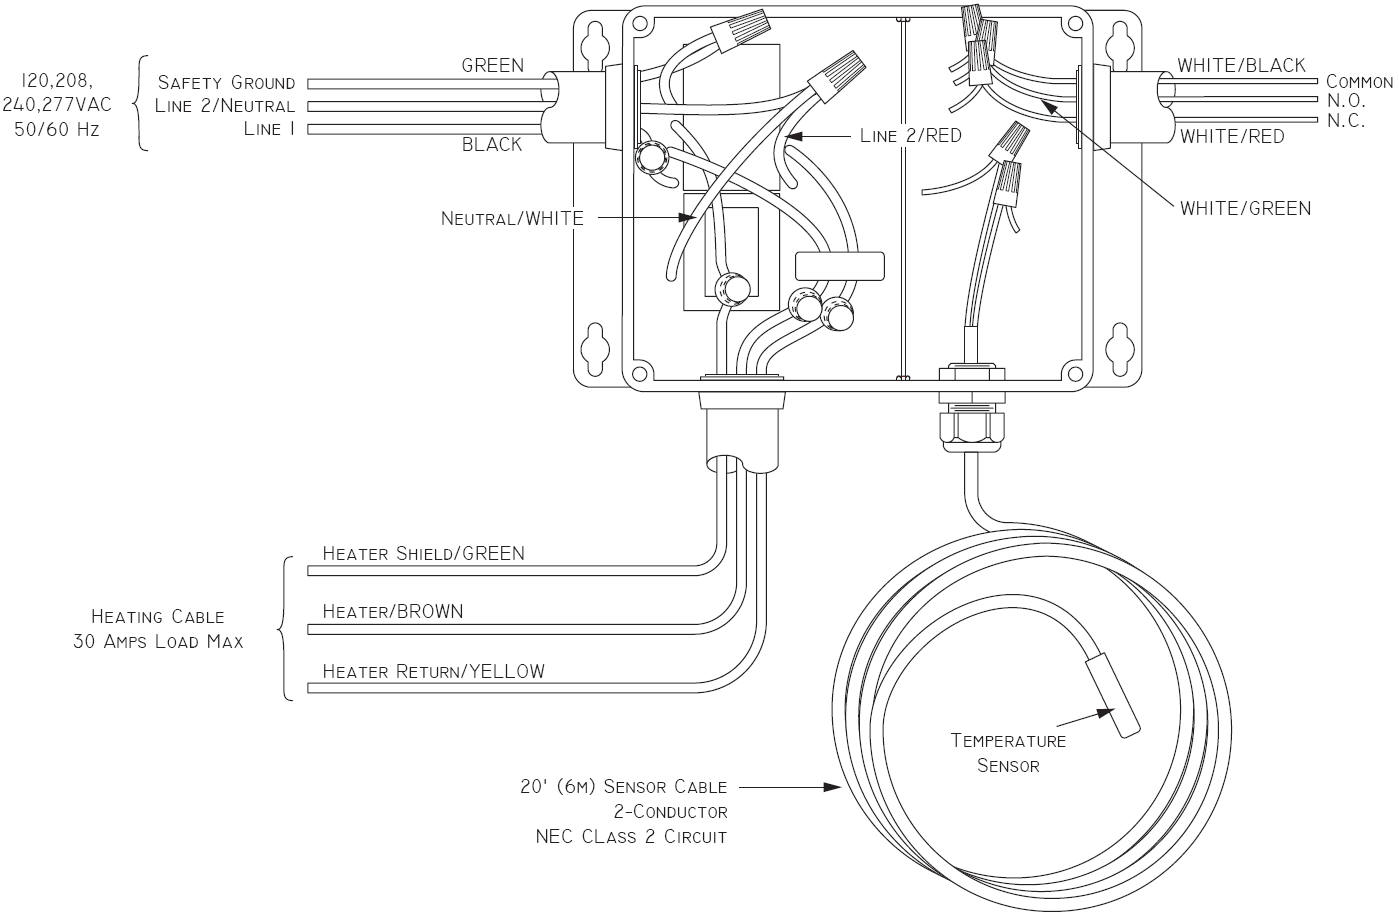 Wattstopper Occupancy Sensor Wiring Diagram